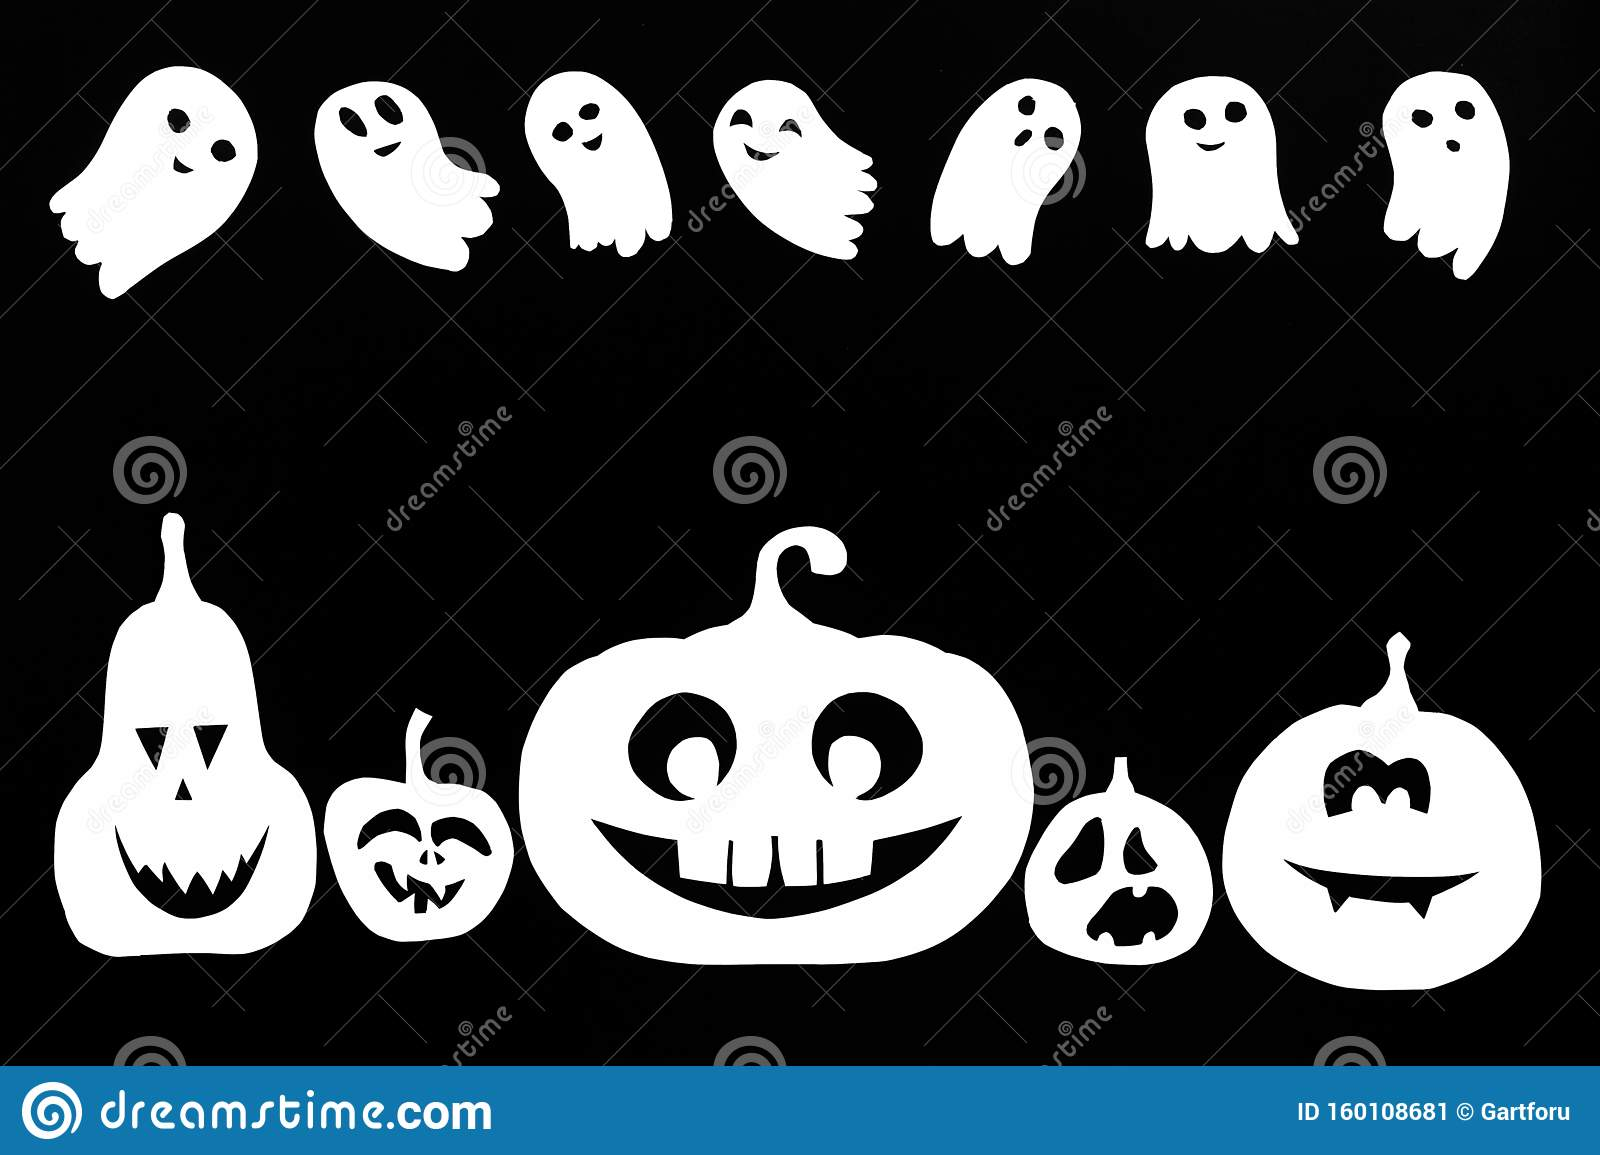 Black And White Background From Pumpkins And Ghosts Cut